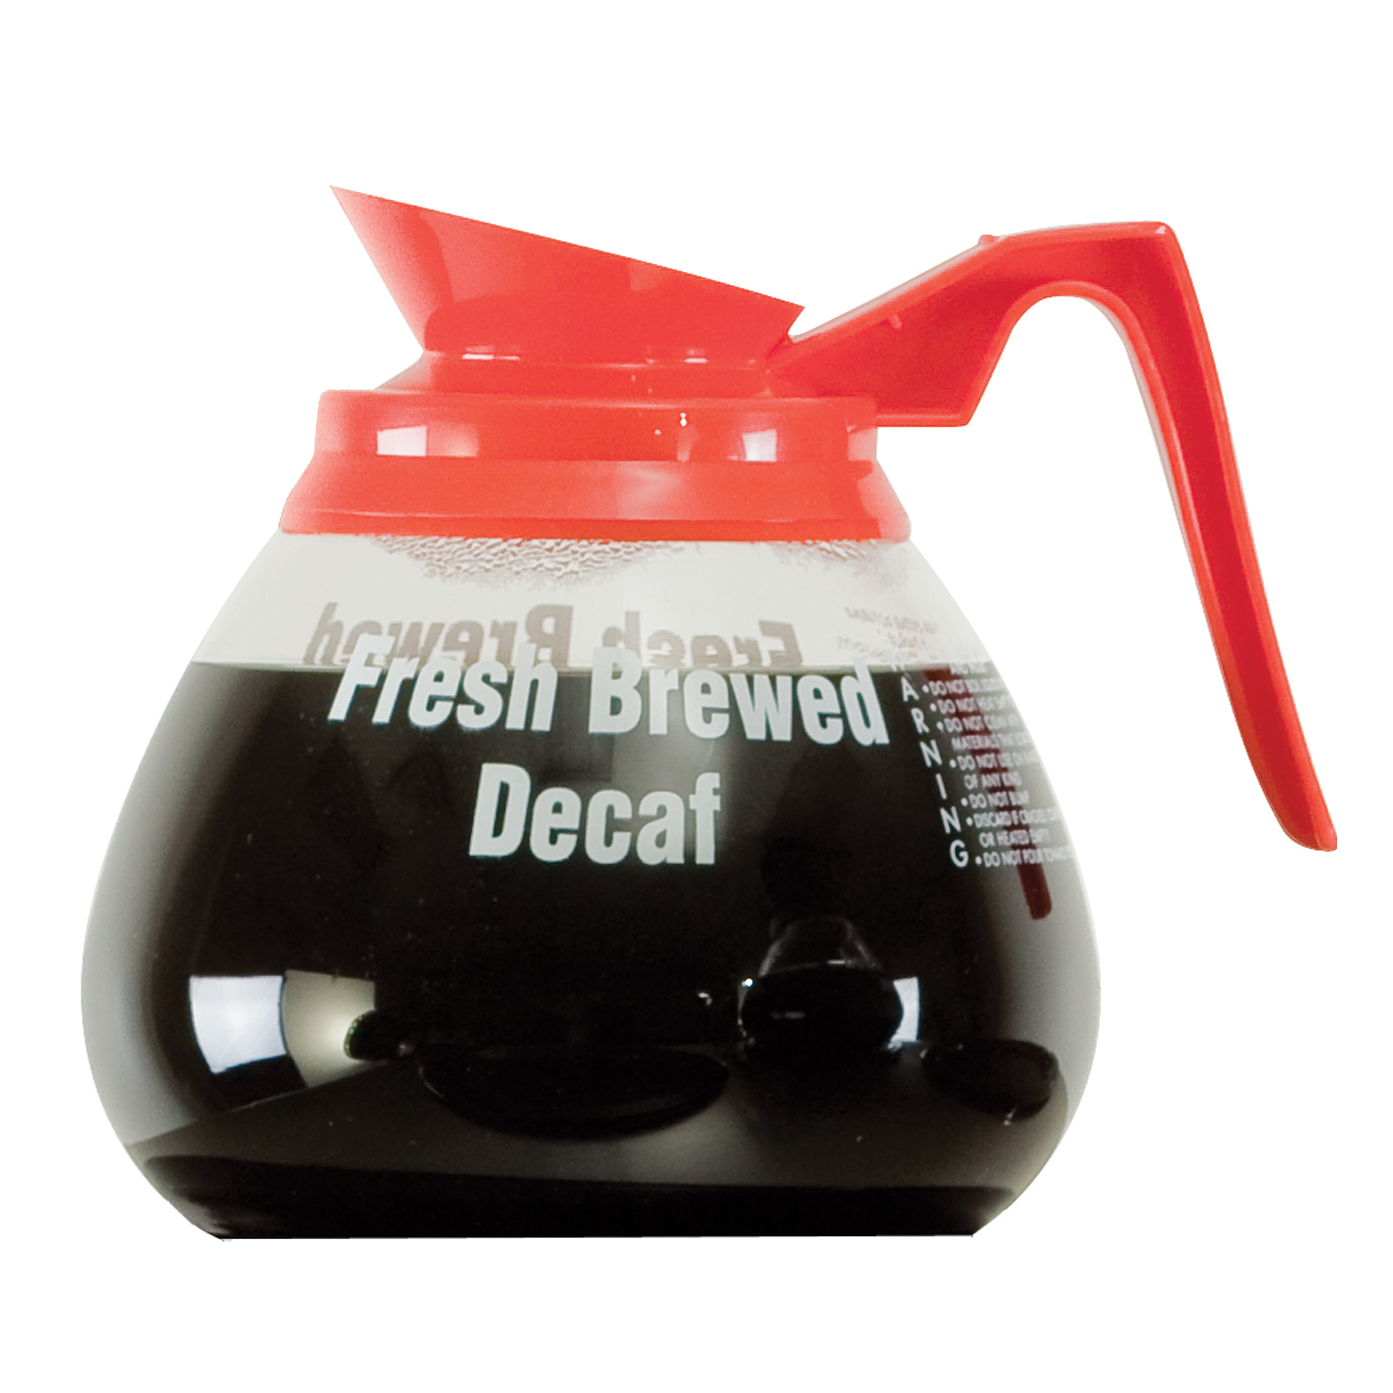 Grindmaster-Cecilware 98001 coffee decanter